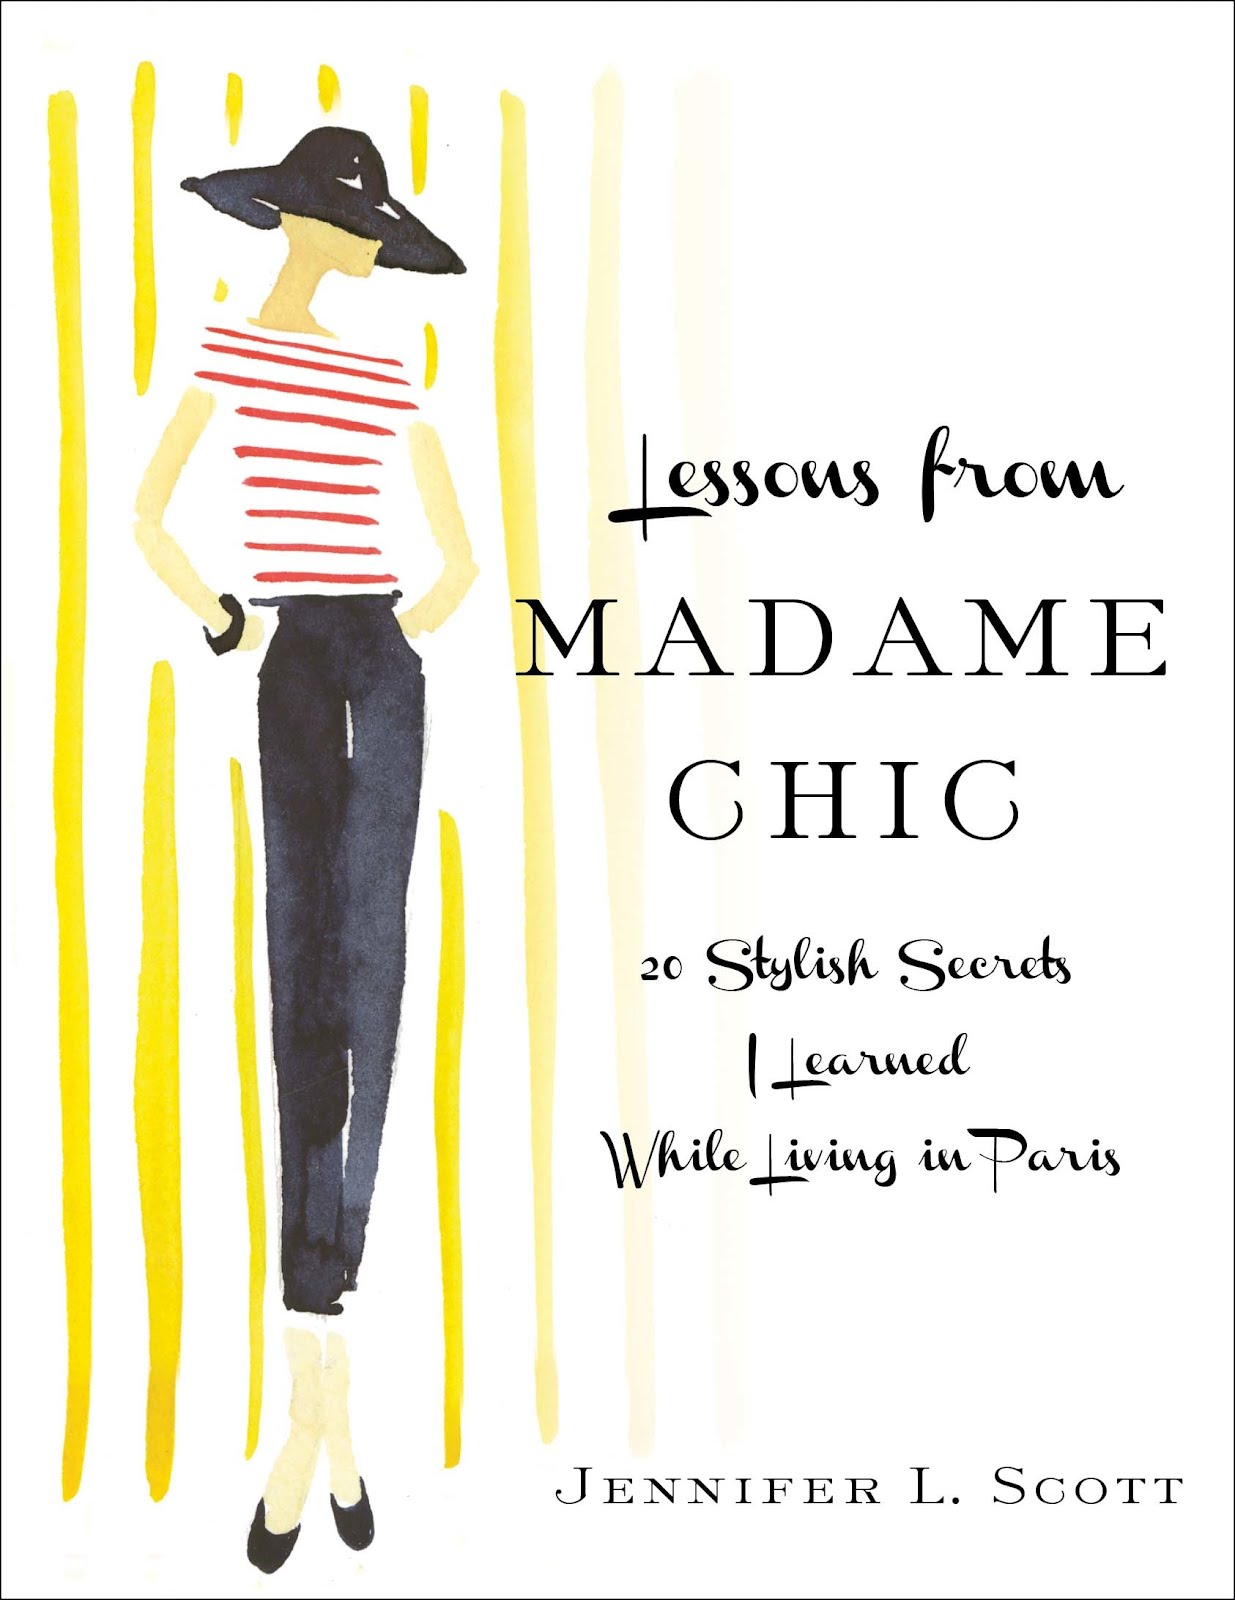 Lessons From Madame Chic Book Cover The Daily Connoisseur